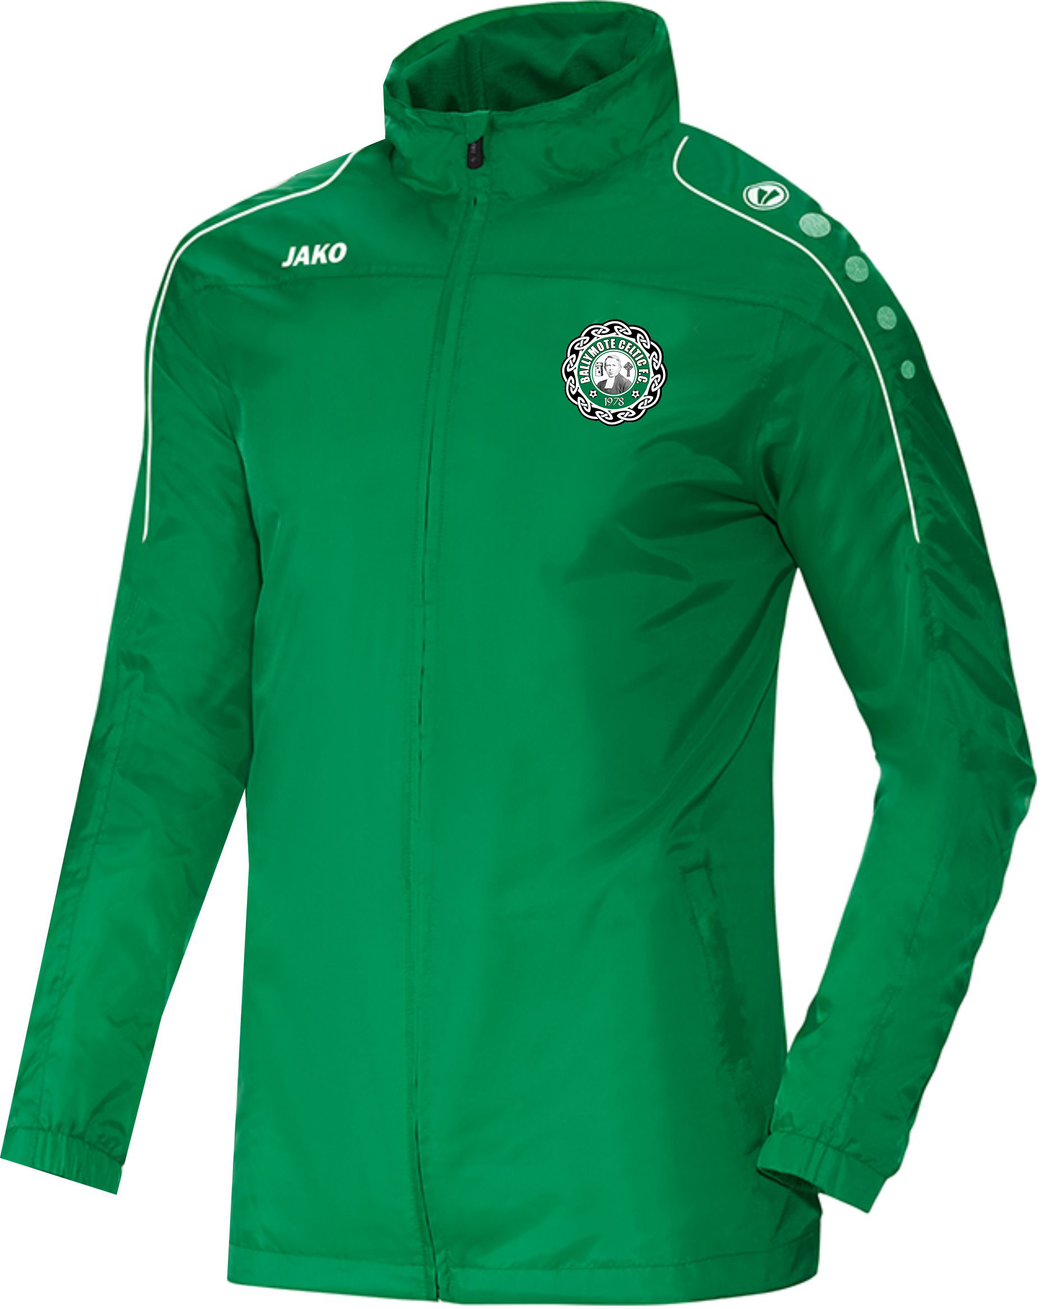 KIDS JAKO BALLYMOTE CELTIC TEAM RAIN JACKET FULL ZIP BC7401K